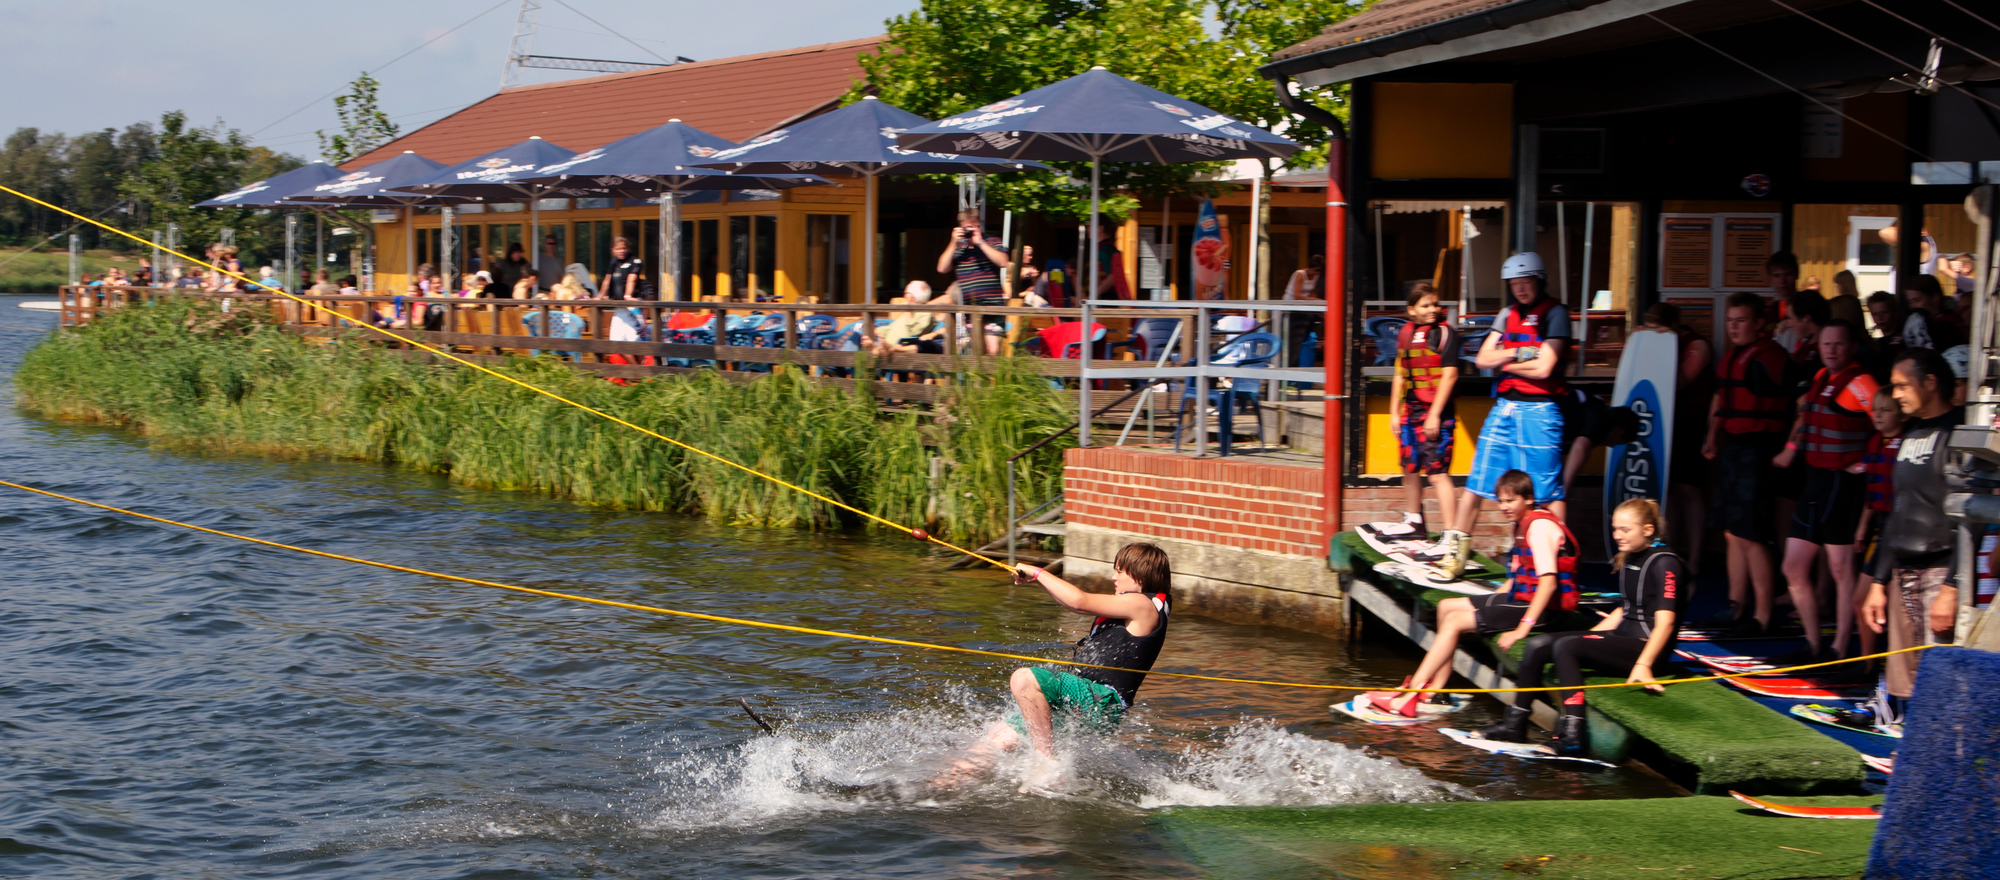 Waterskiing on the Alfsee near to the 3-star-superior hotel Ringhotel Alfsee Piazza in Rieste